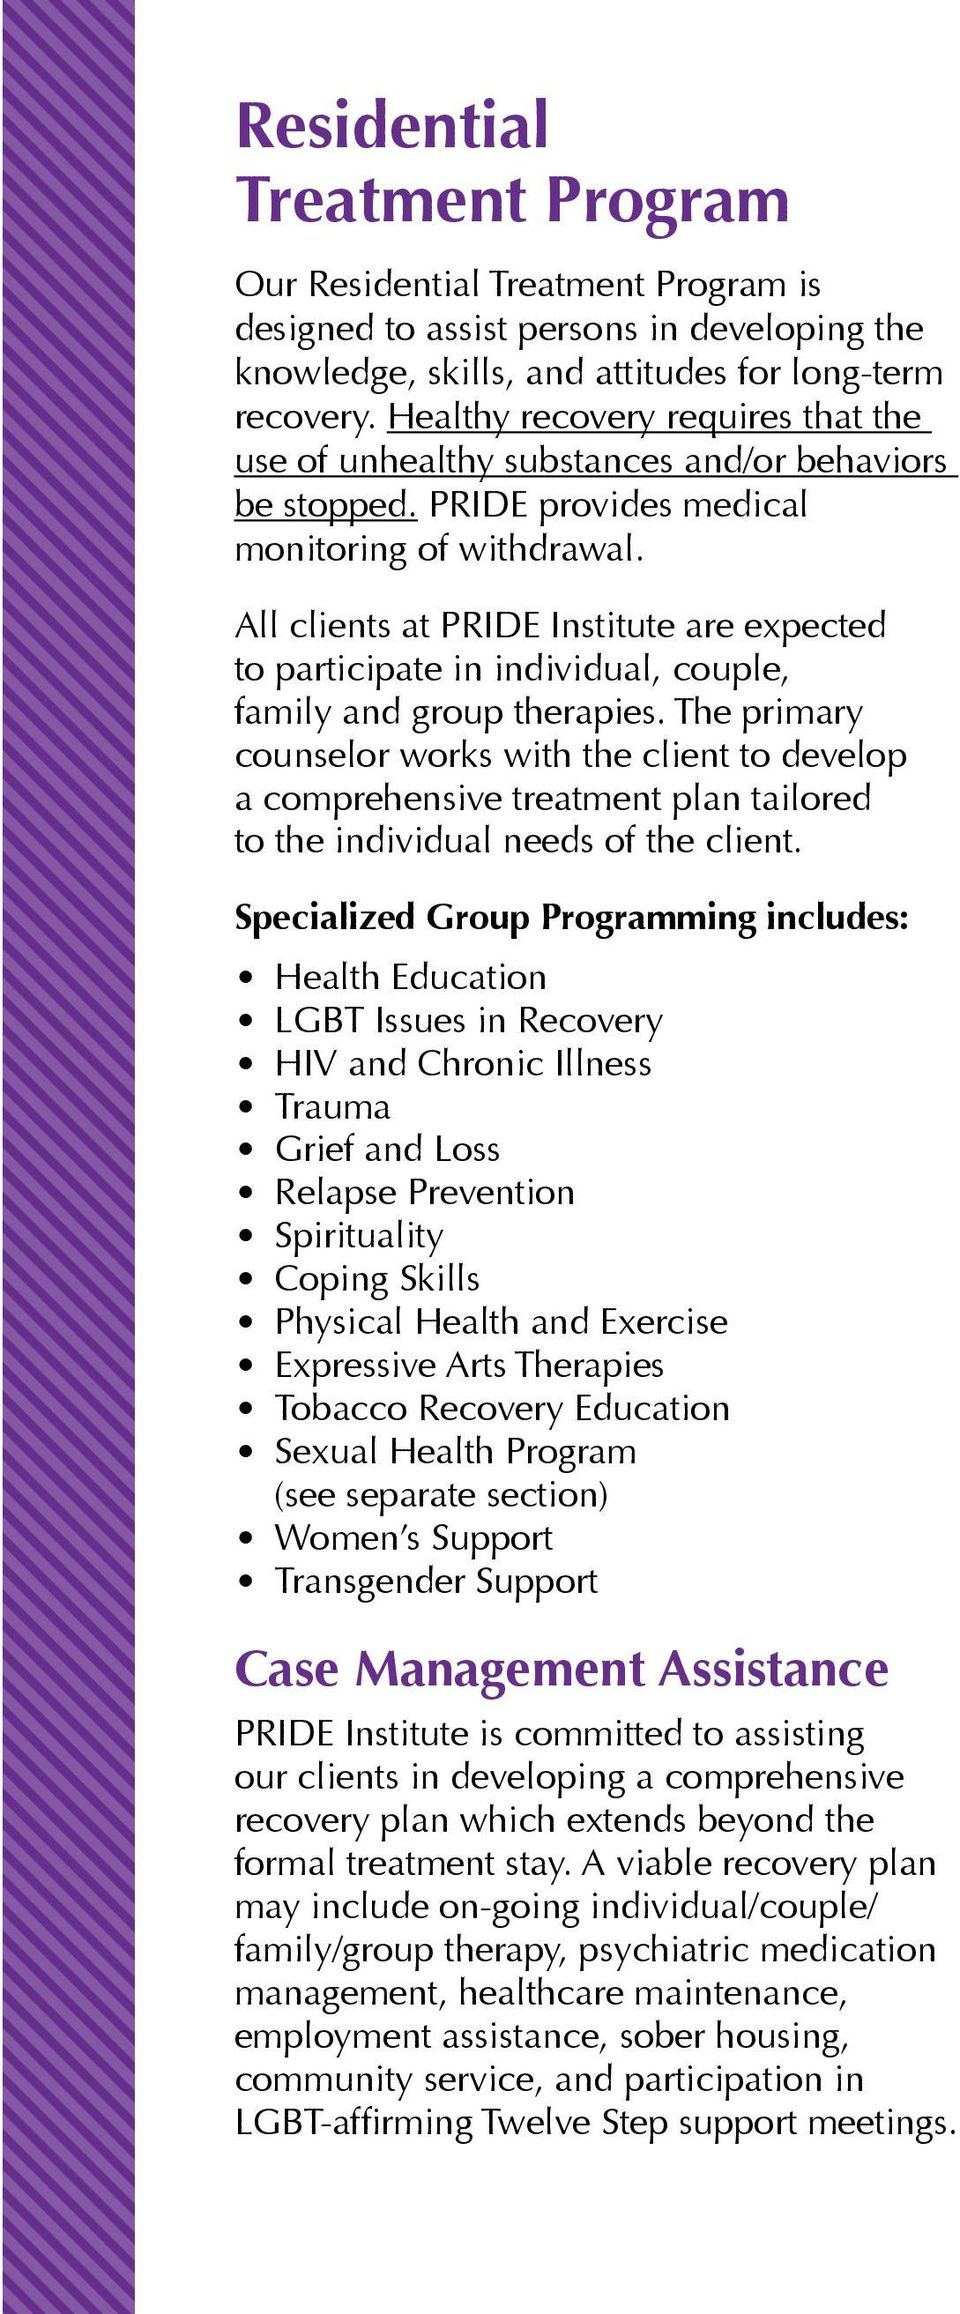 All clients at PRIDE Institute are expected to participate in individual, couple, family and group therapies.